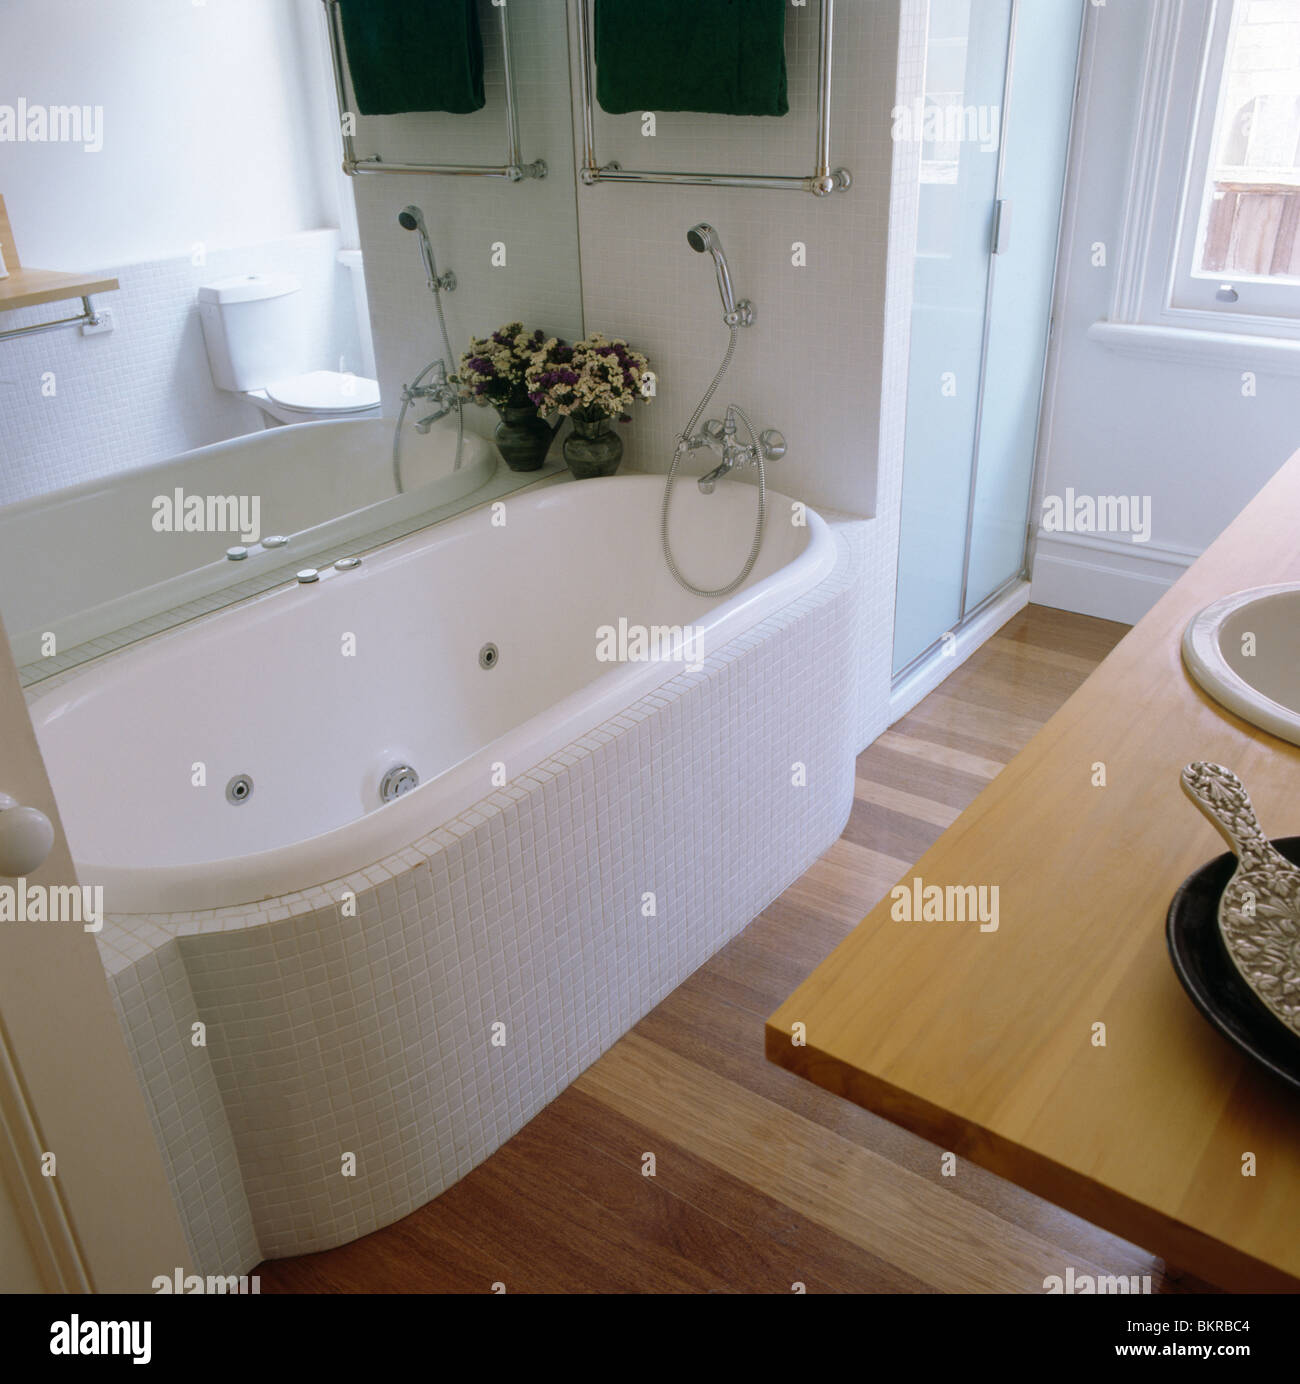 Large mirror above bath with white mosaic surround in modern white ...